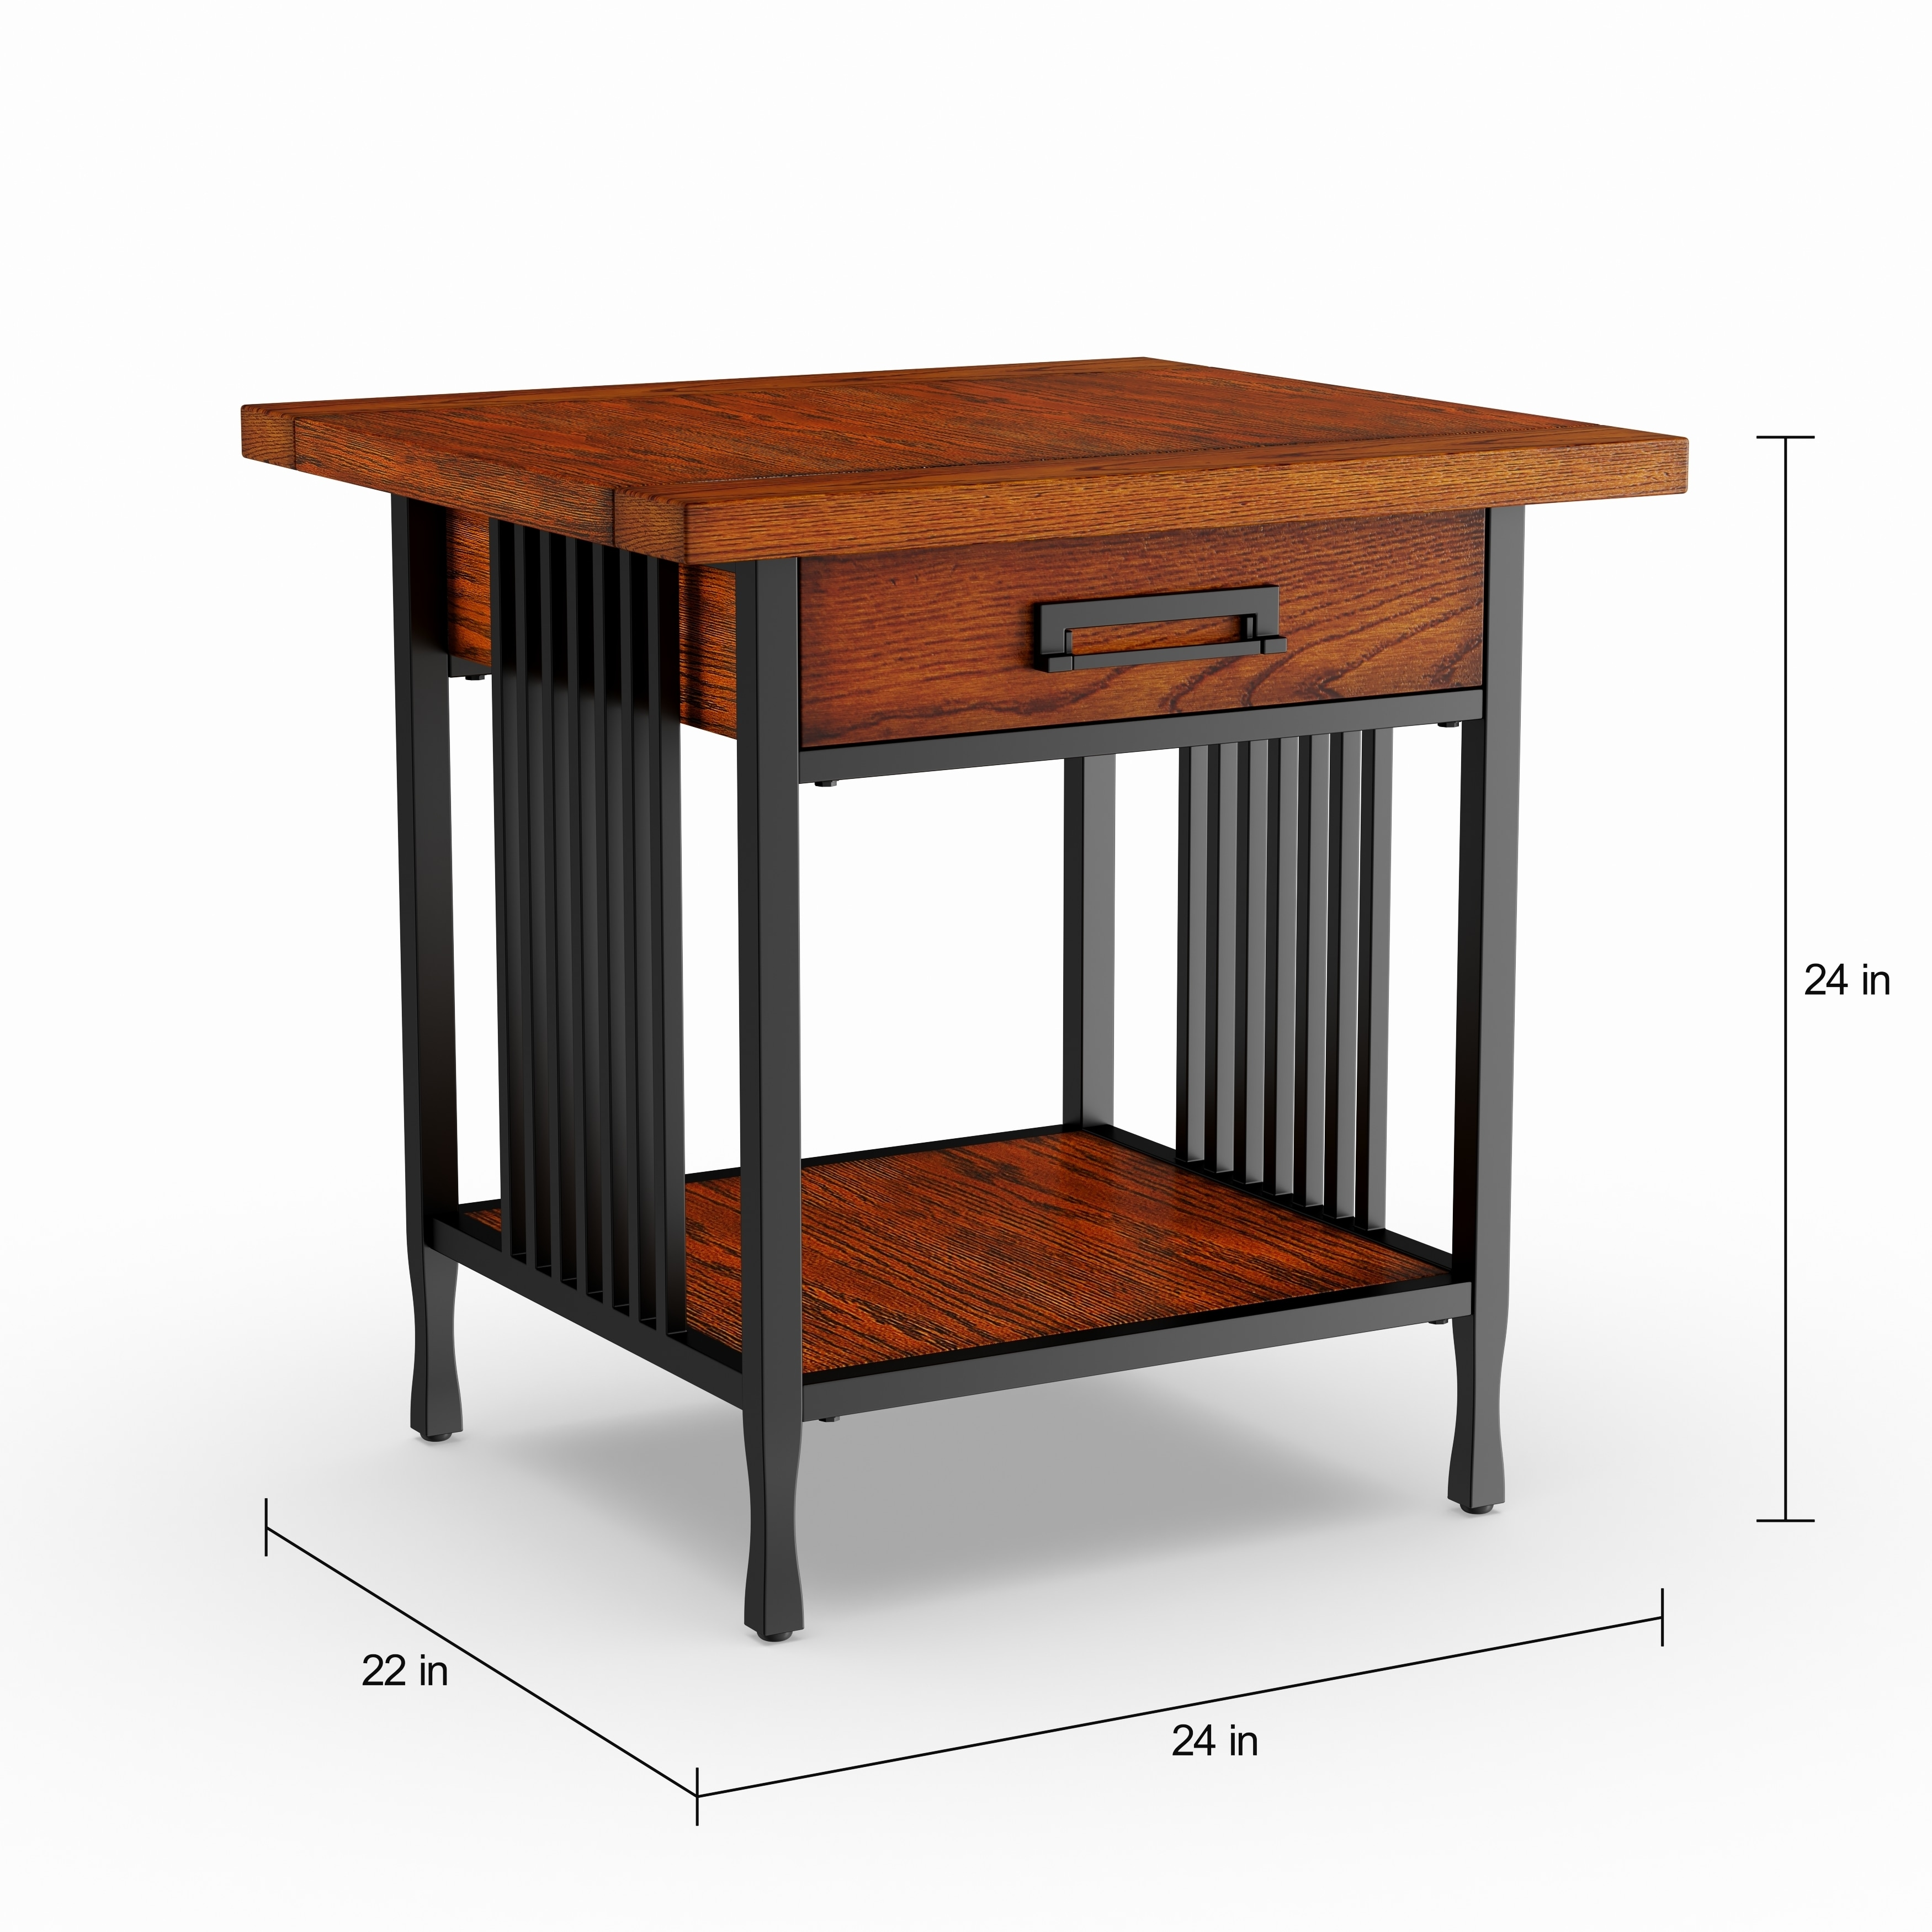 Carbon Loft Peter Matte Black Slatted Metal Oak End Table With Drawer Free Shipping Today 10235811